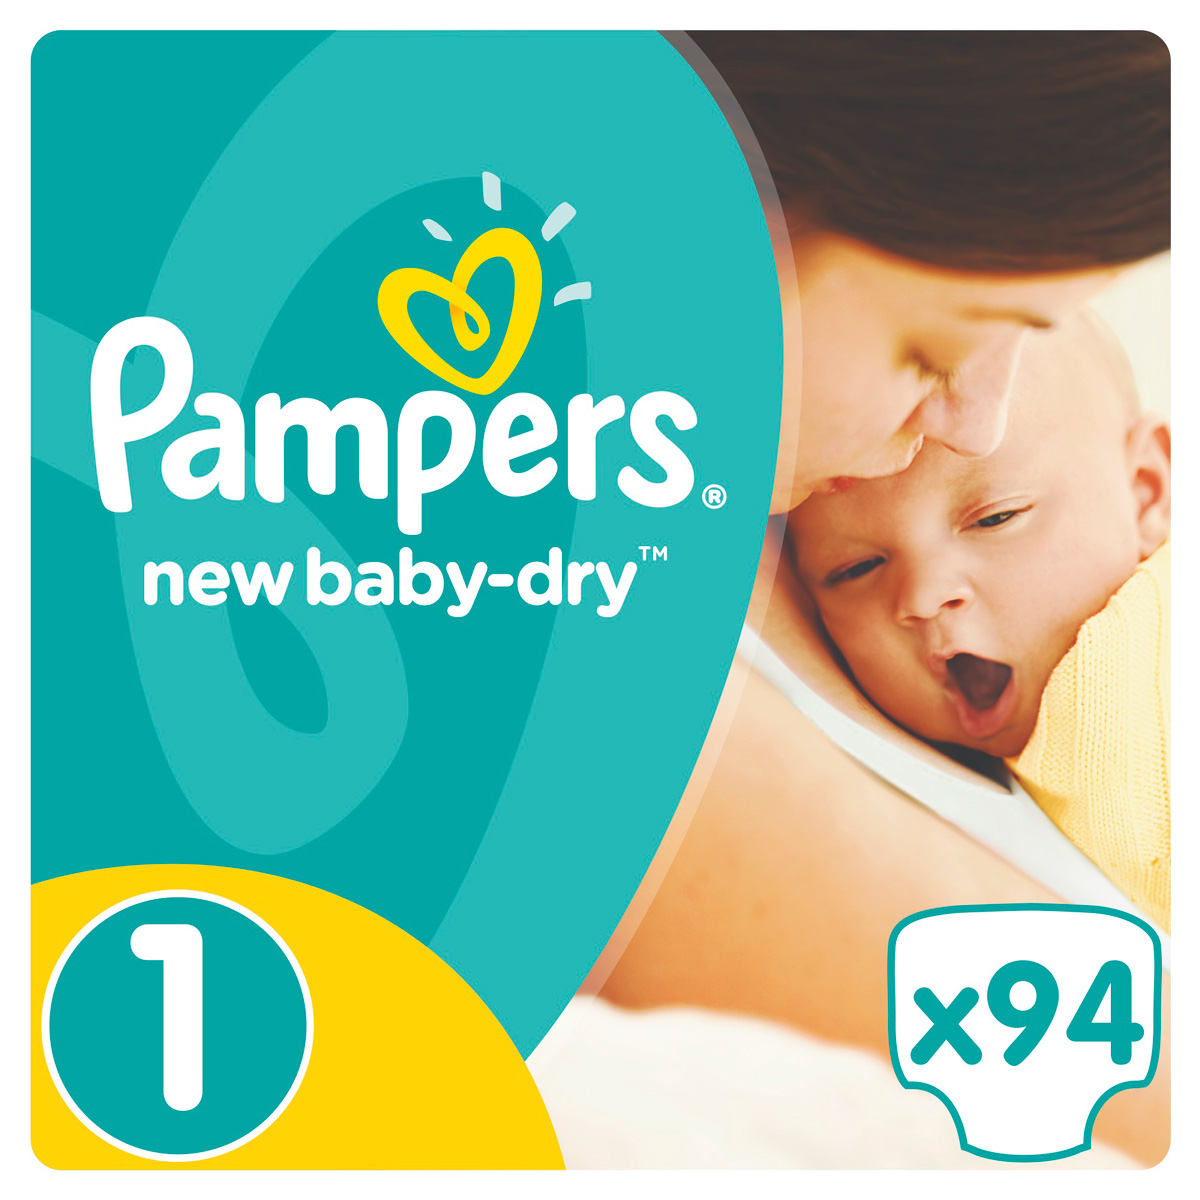 Pampers Подгузники New Baby-Dry 2-5 кг (размер 1) 94 шт цена pampers 2